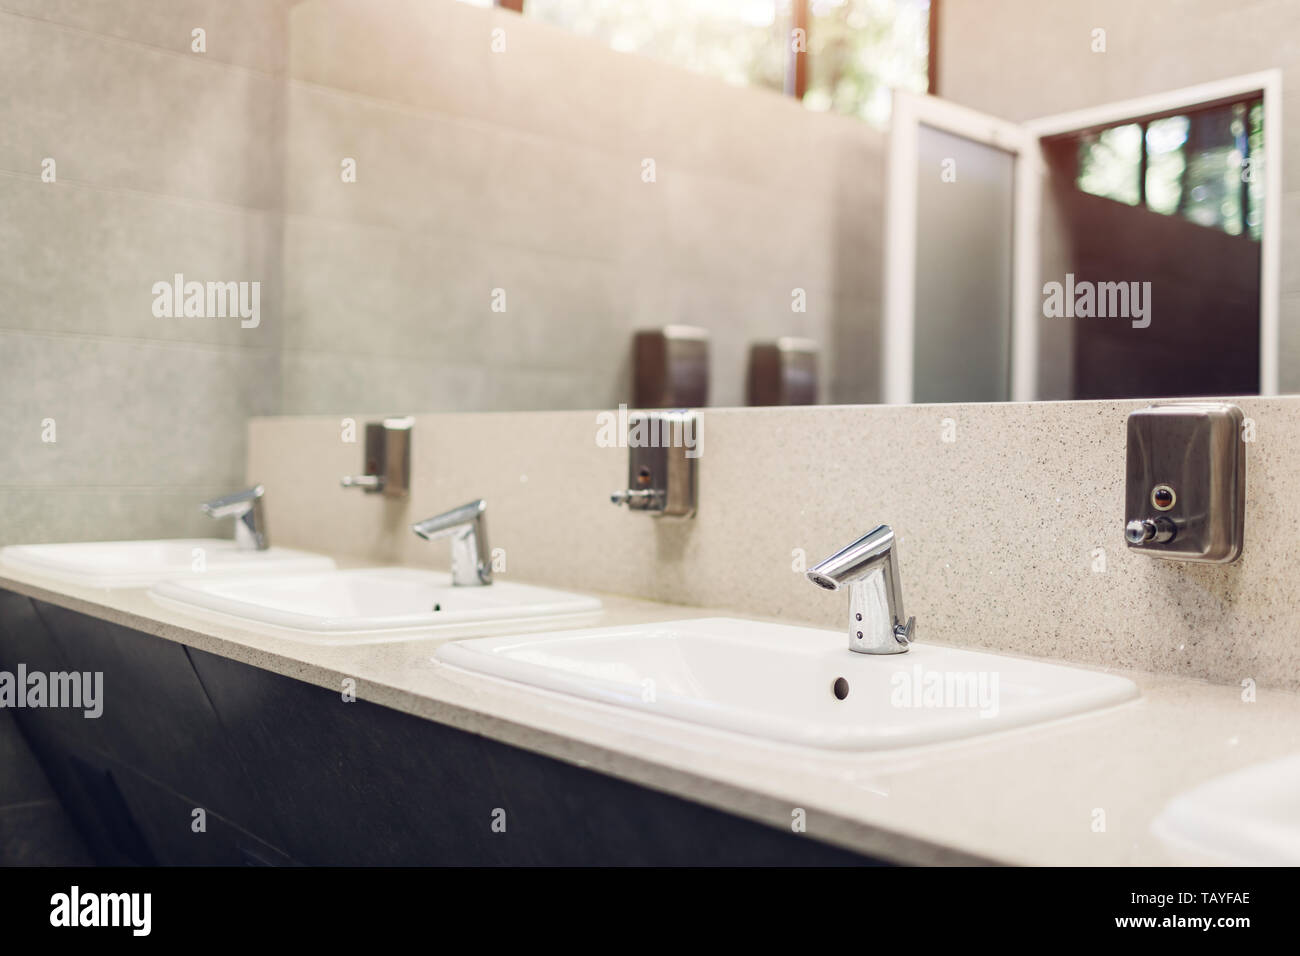 Modern Interior Design In Public Toilet New Sinks Taps With Mirror And Window Above Wc Stock Photo Alamy